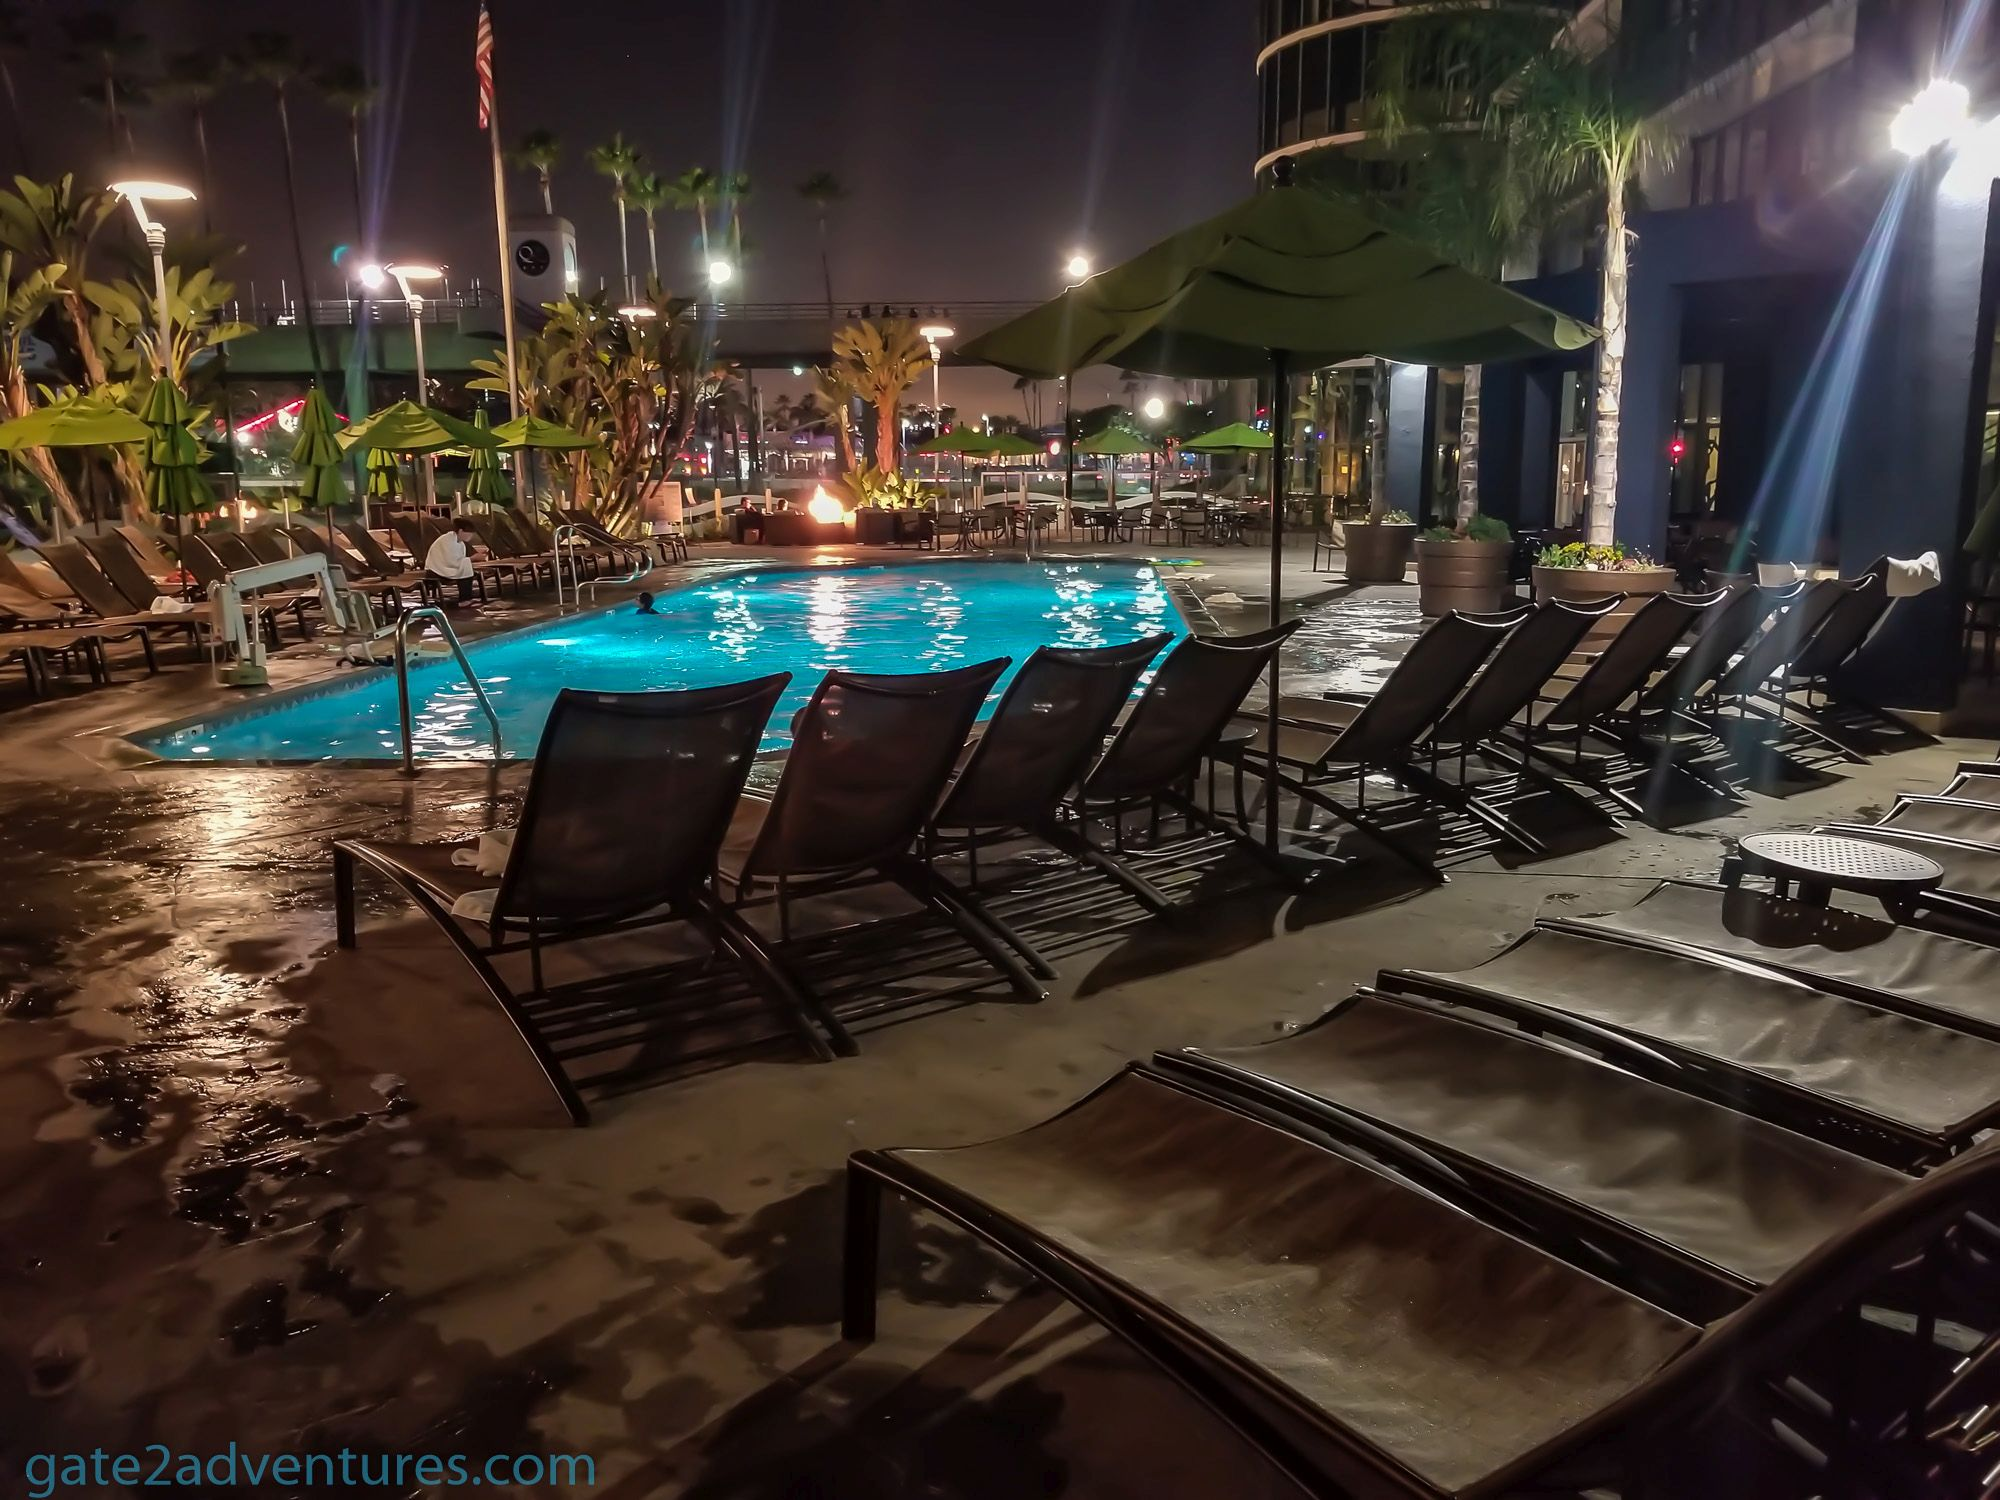 chair rentals long beach ca ivory satin covers hotel review hyatt regency california gate